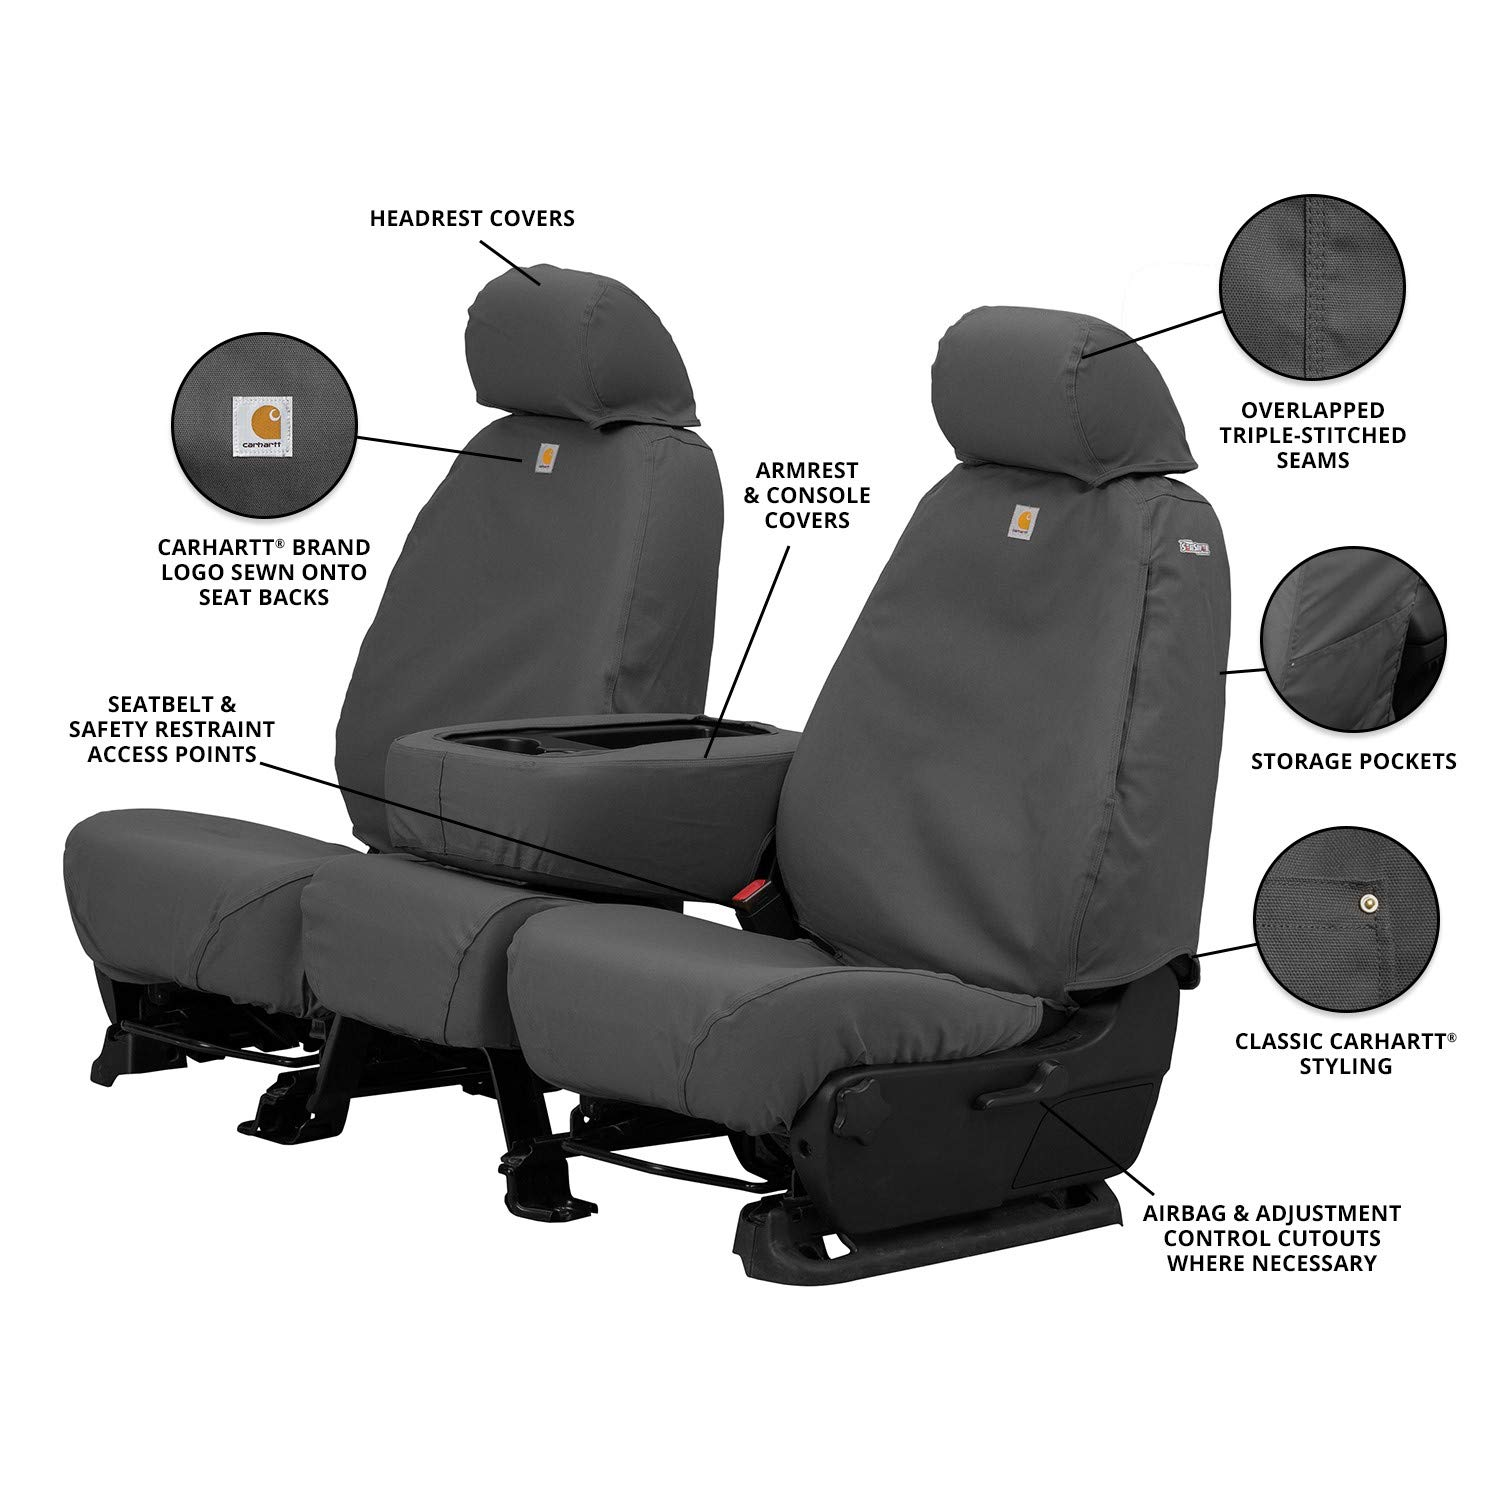 Covercraft Carhartt SeatSaver Front Row Custom Fit Seat Cover for Select Toyota Tacoma Models - Duck Weave (Gravel) by Covercraft (Image #5)